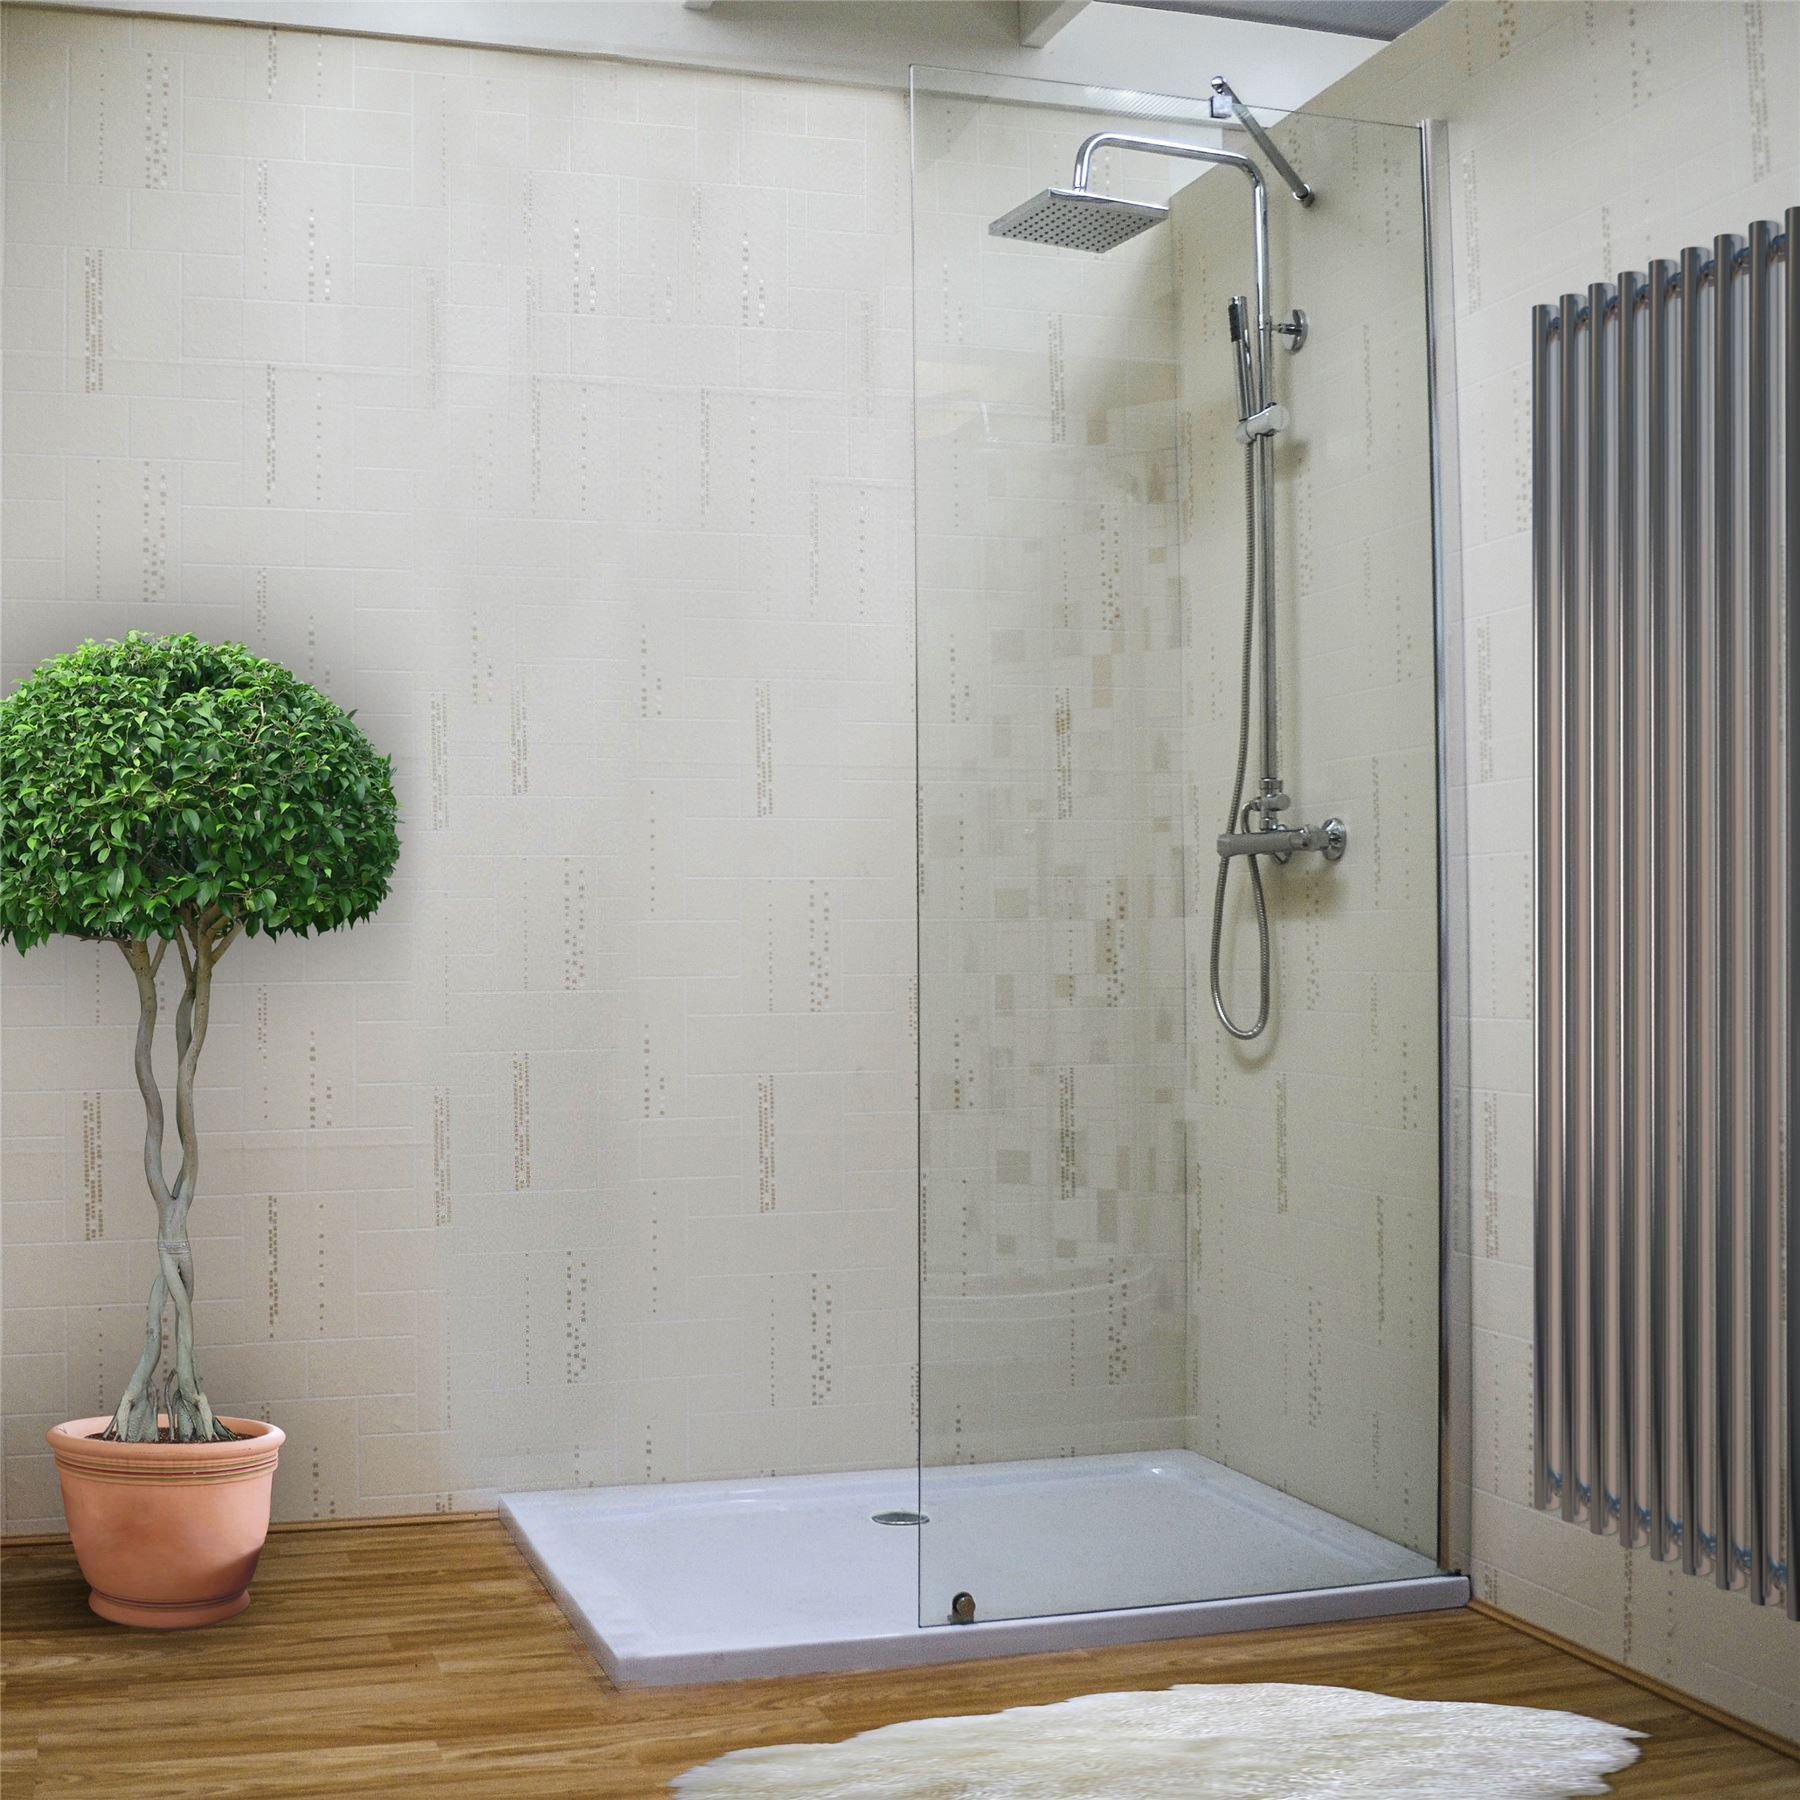 Details about 8mm walk in wet room screen shower enclosure cubicle tall glass screen panel